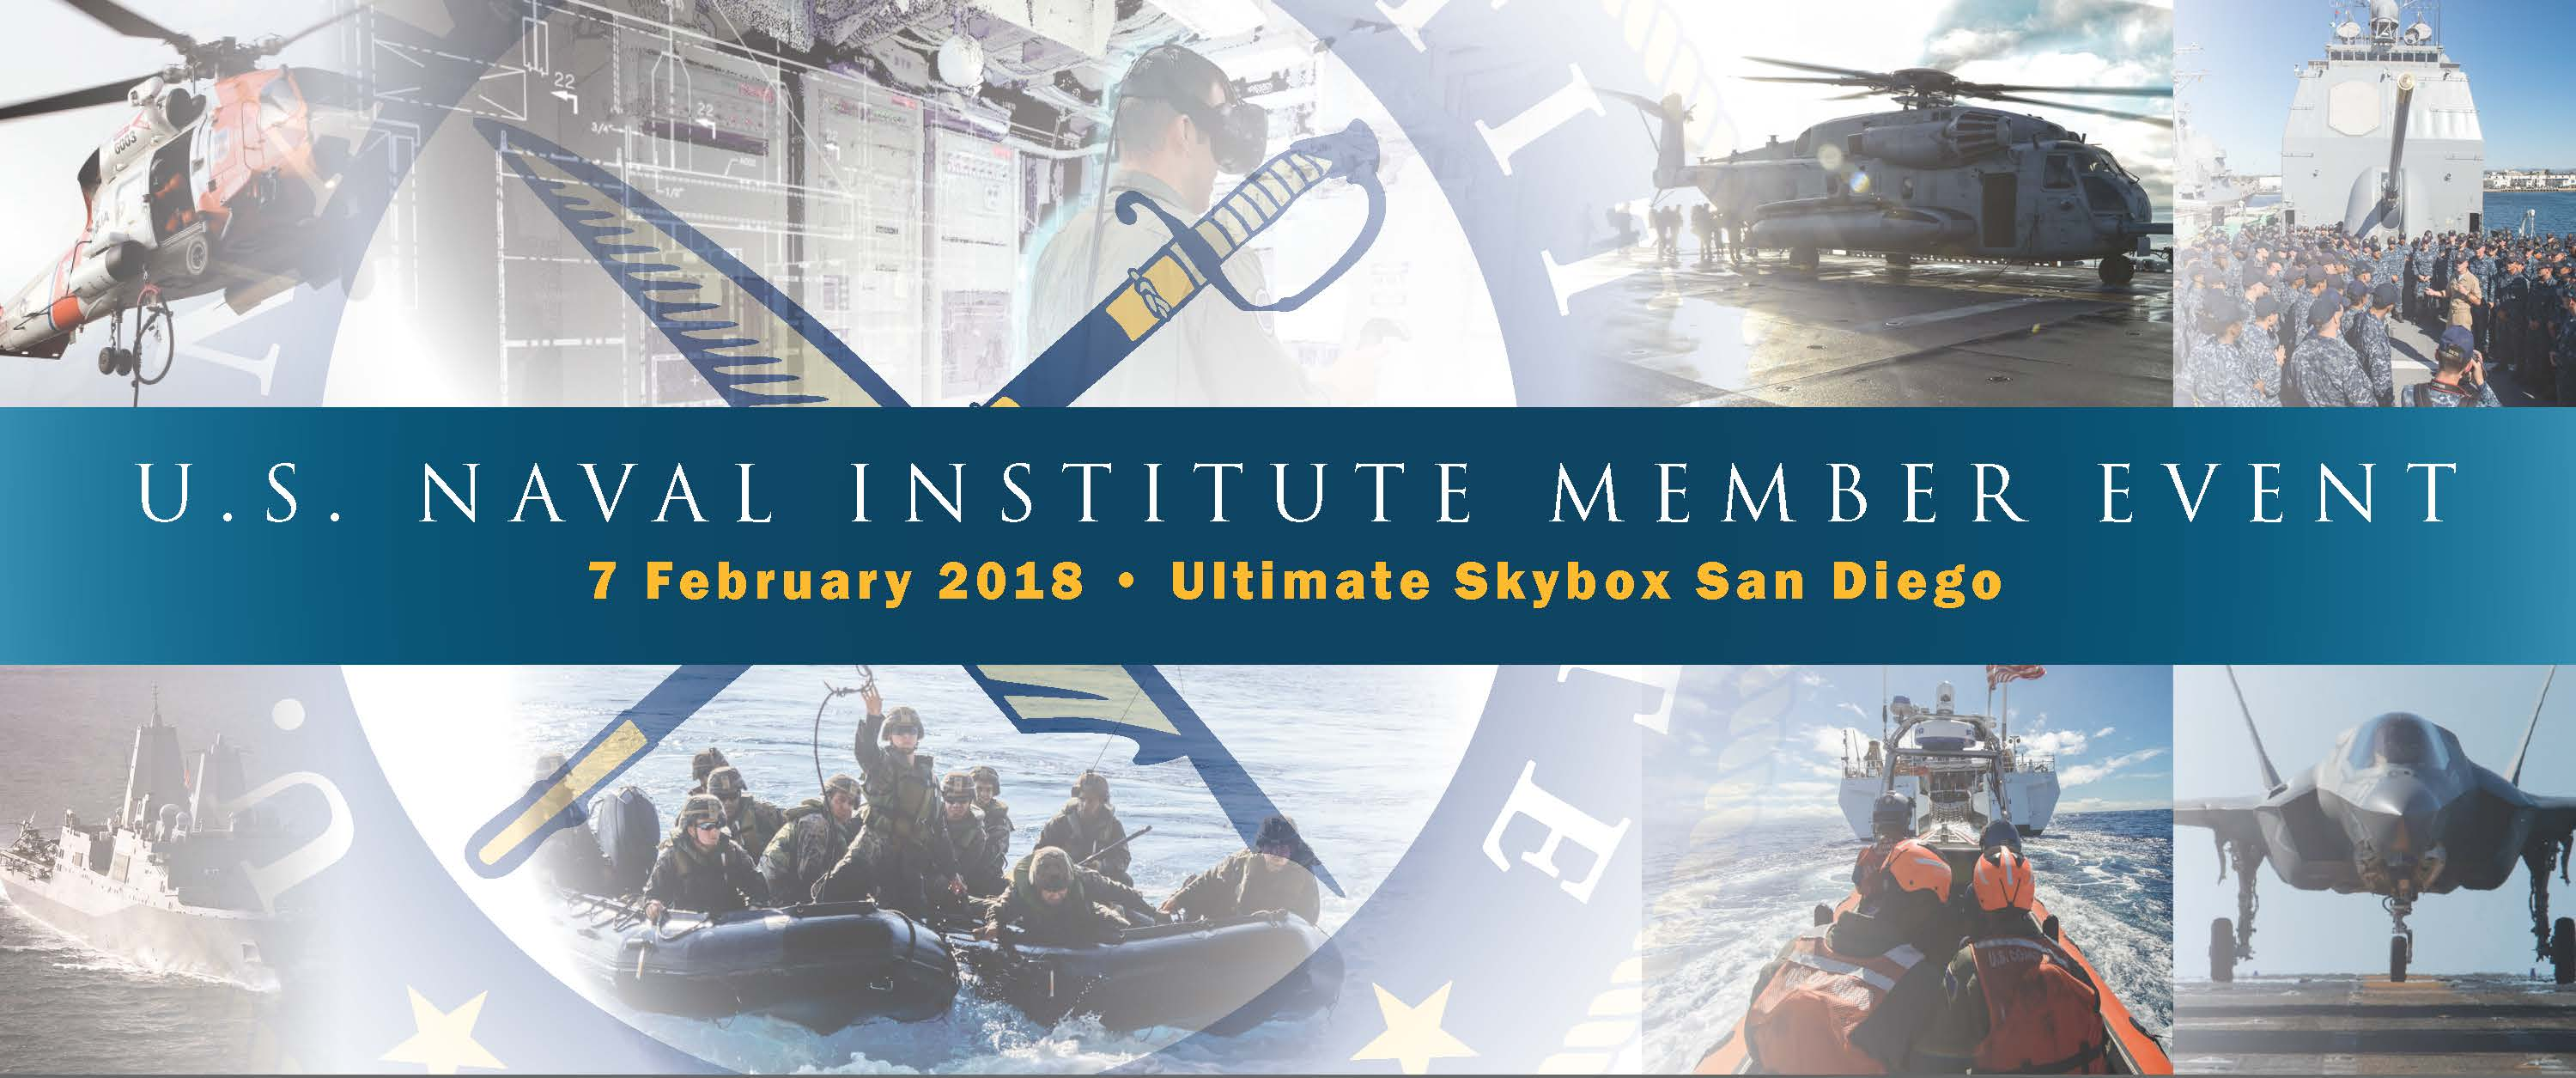 2018 U.S. Naval Institute Member Event